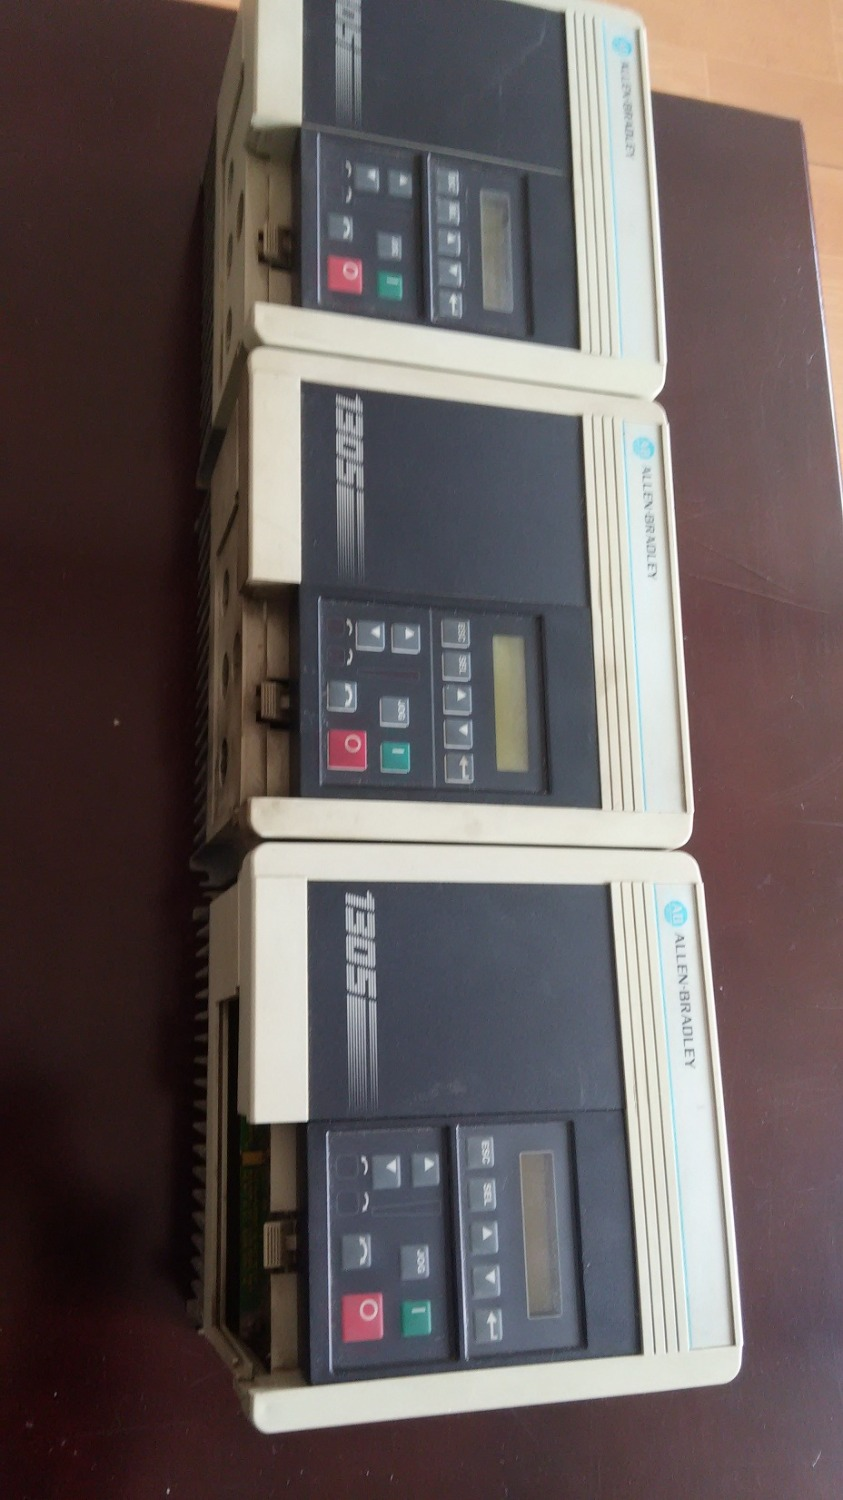 AB  1305-BA09A 4.0KW used in good condition